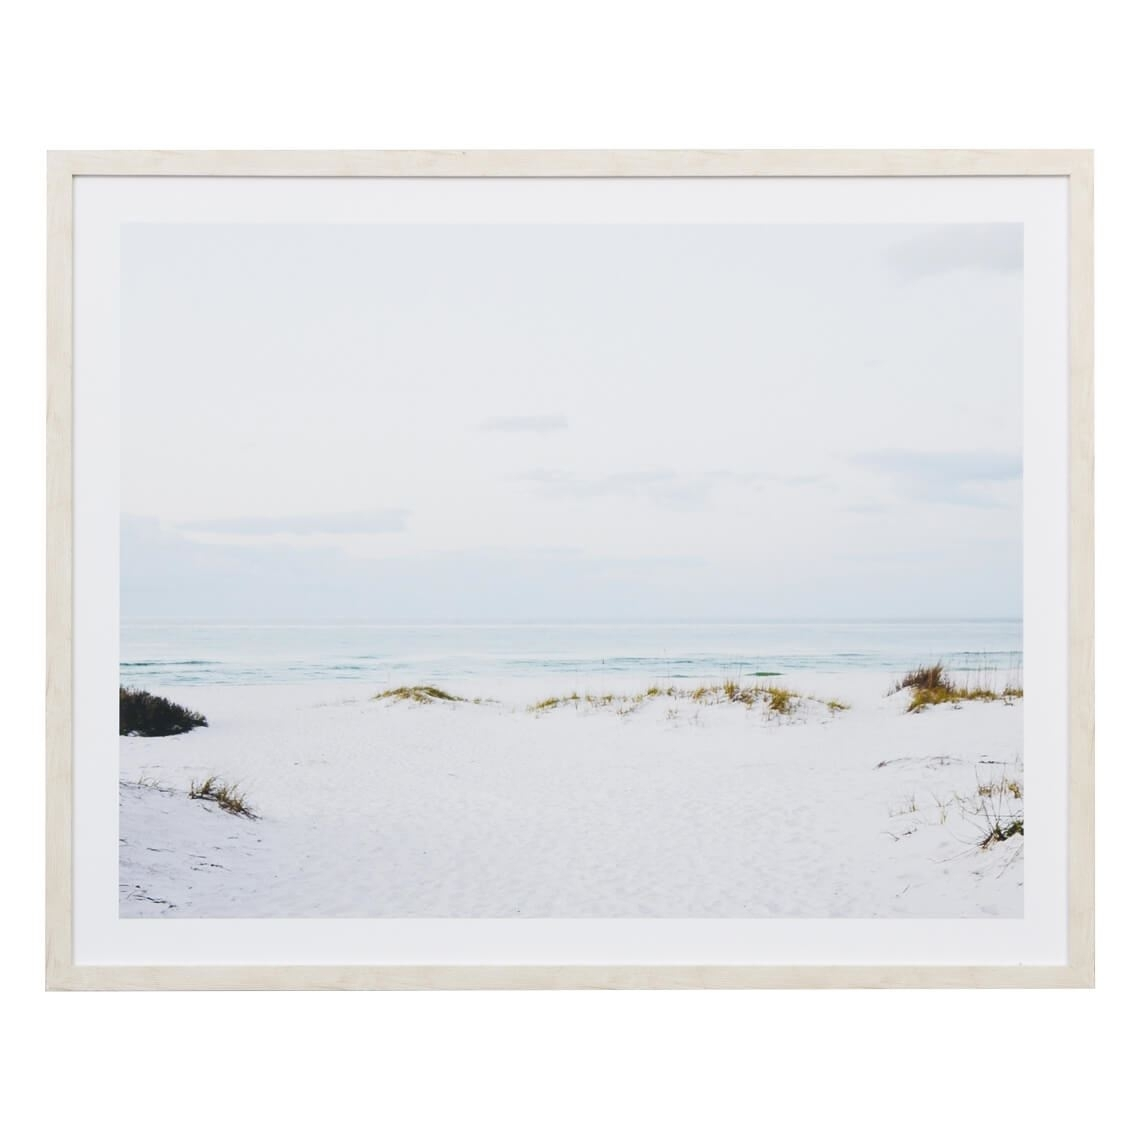 Wall Prints | Wall Art & Framed Prints | Freedom With Most Up To Date Mandurah Canvas Wall Art (View 14 of 15)